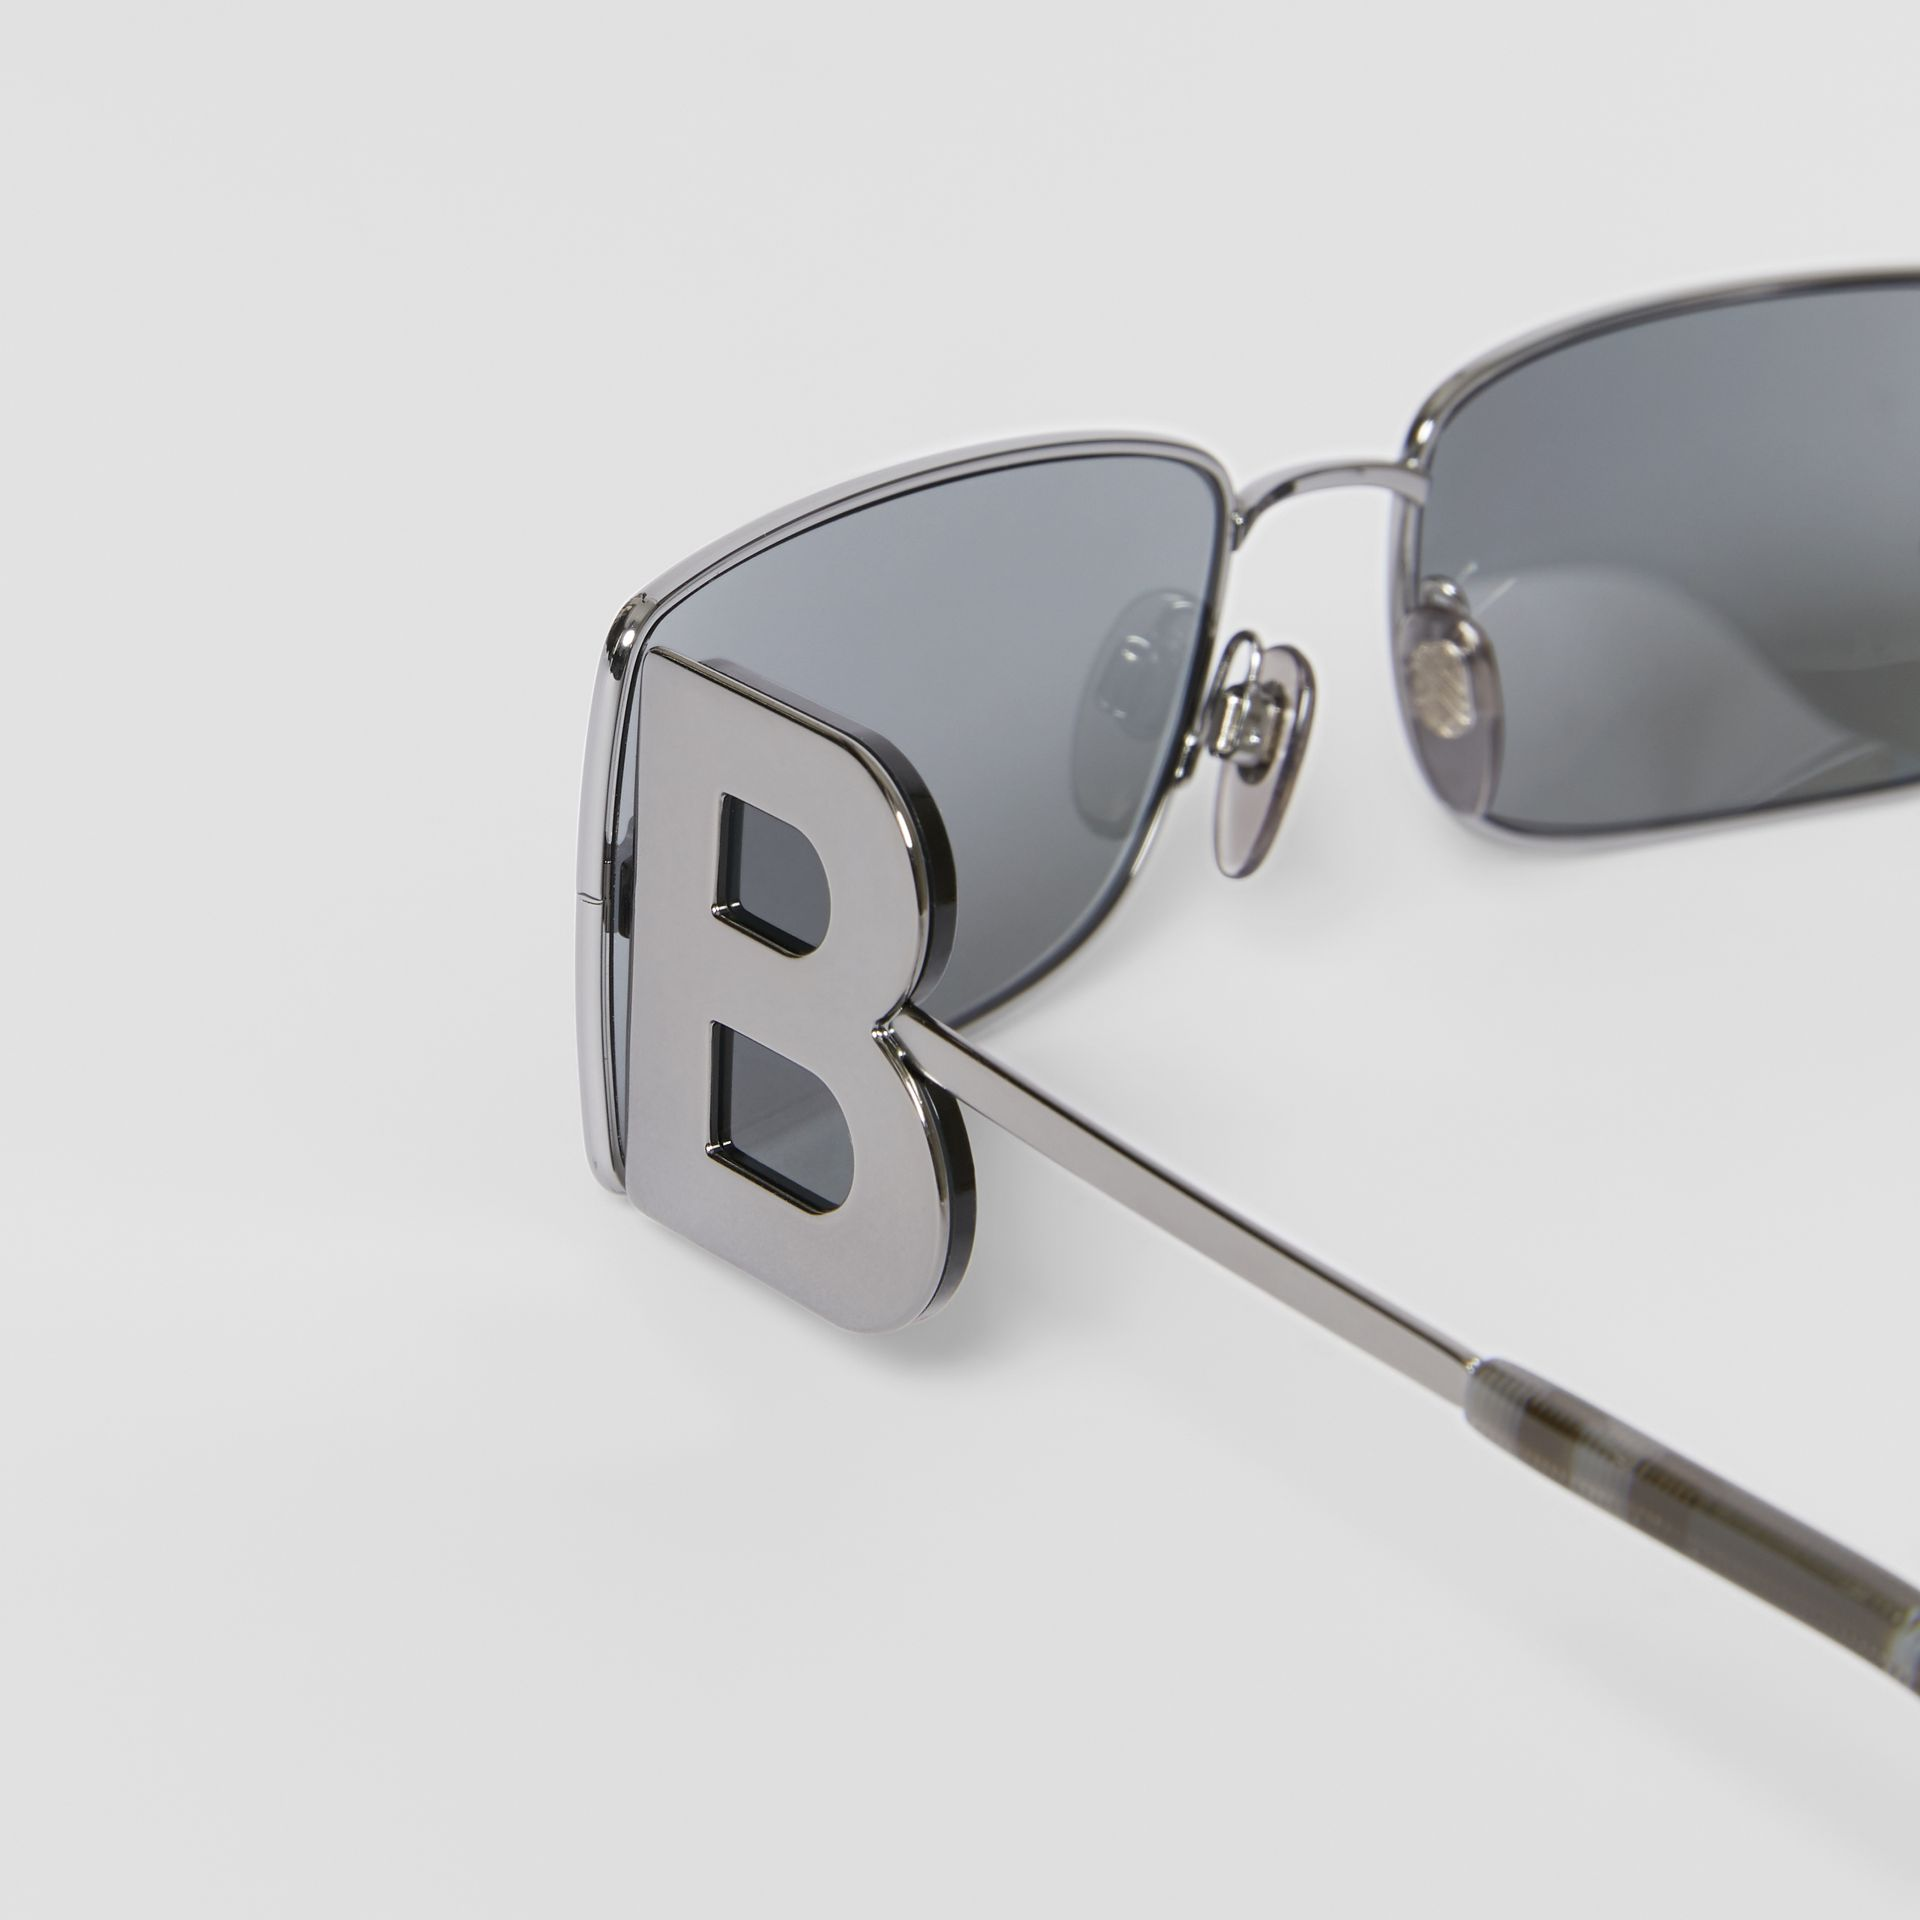 'B' Lens Detail Rectangular Frame Sunglasses in Gun Metal Grey - Women | Burberry - gallery image 1